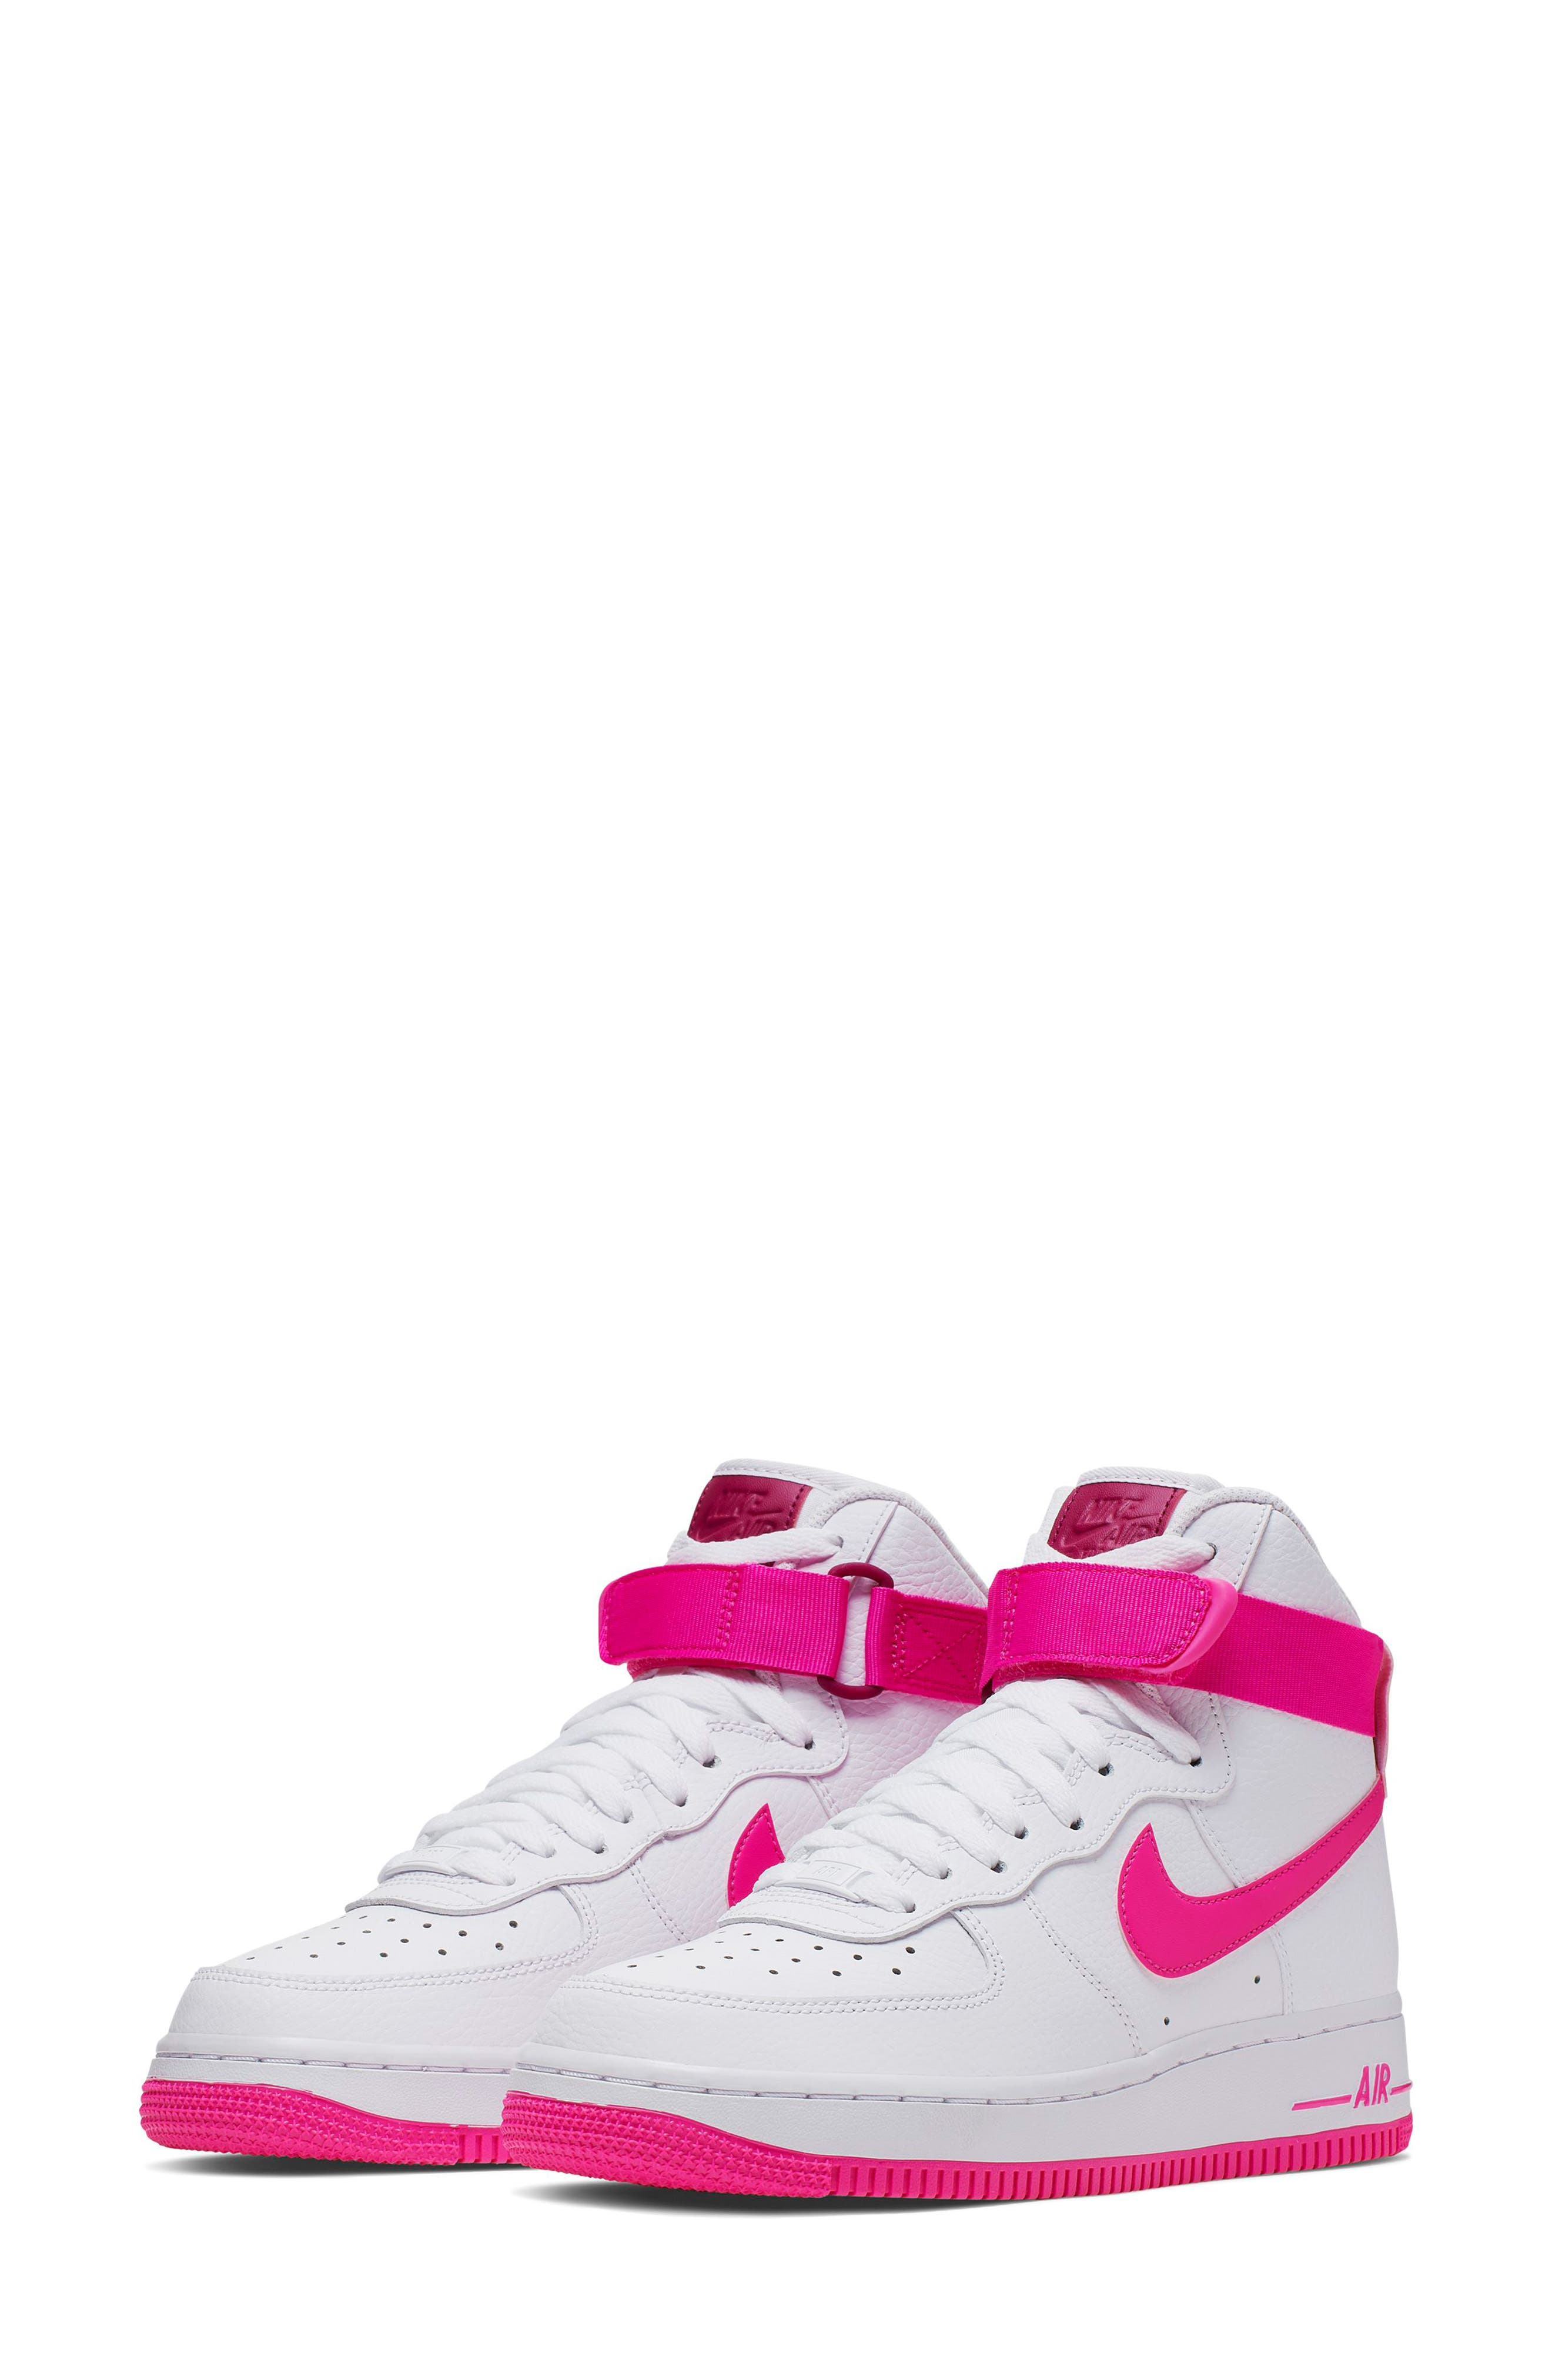 369cc18eaed5 Nike High Tops  High-Top Sneakers for Women